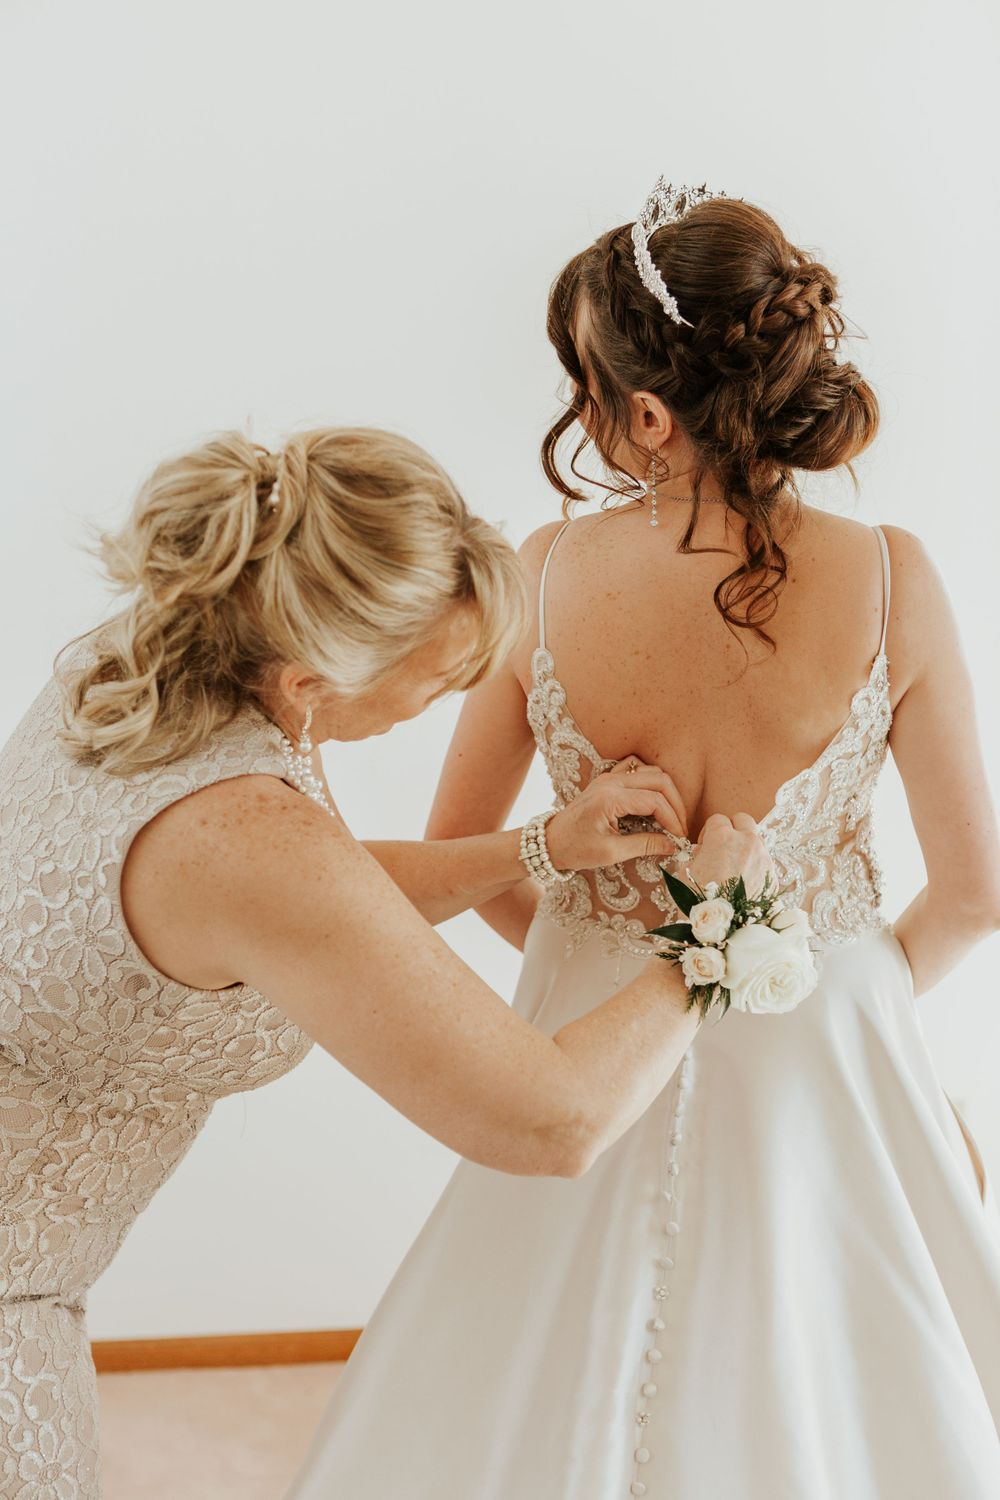 Mother of the bride fixes the brides dress during her Loveland Wedding